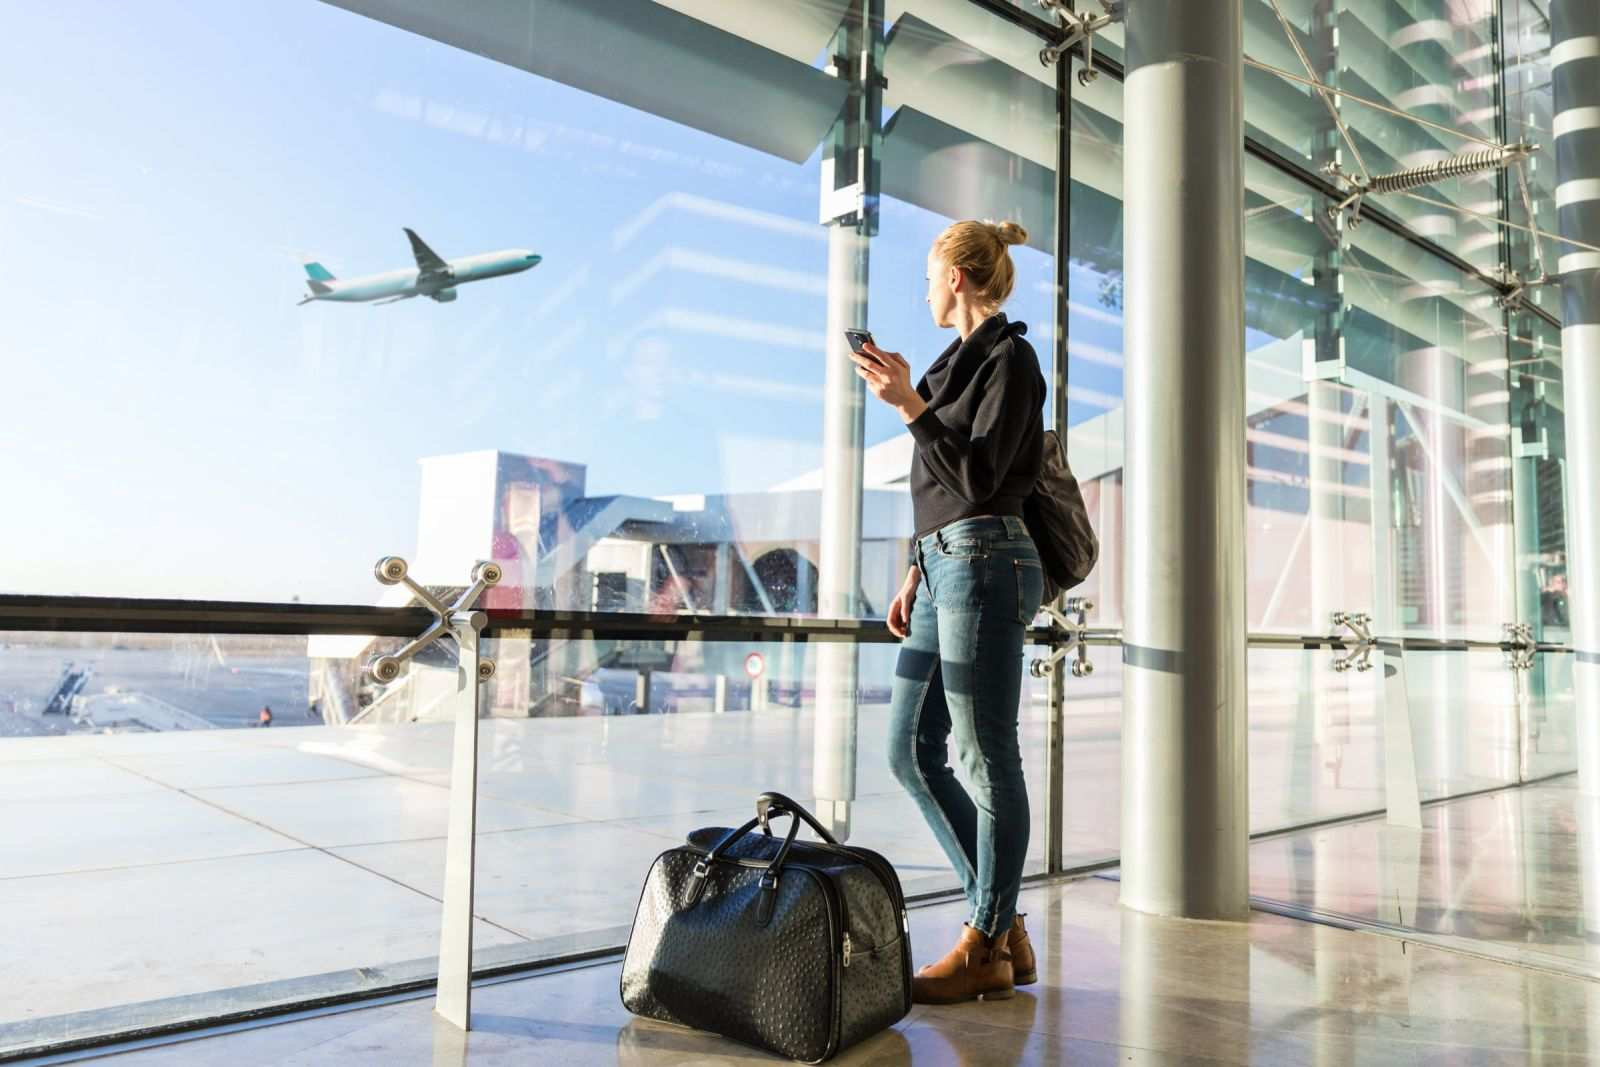 From Bad to Worse: January Air Passenger Demand Falls Further